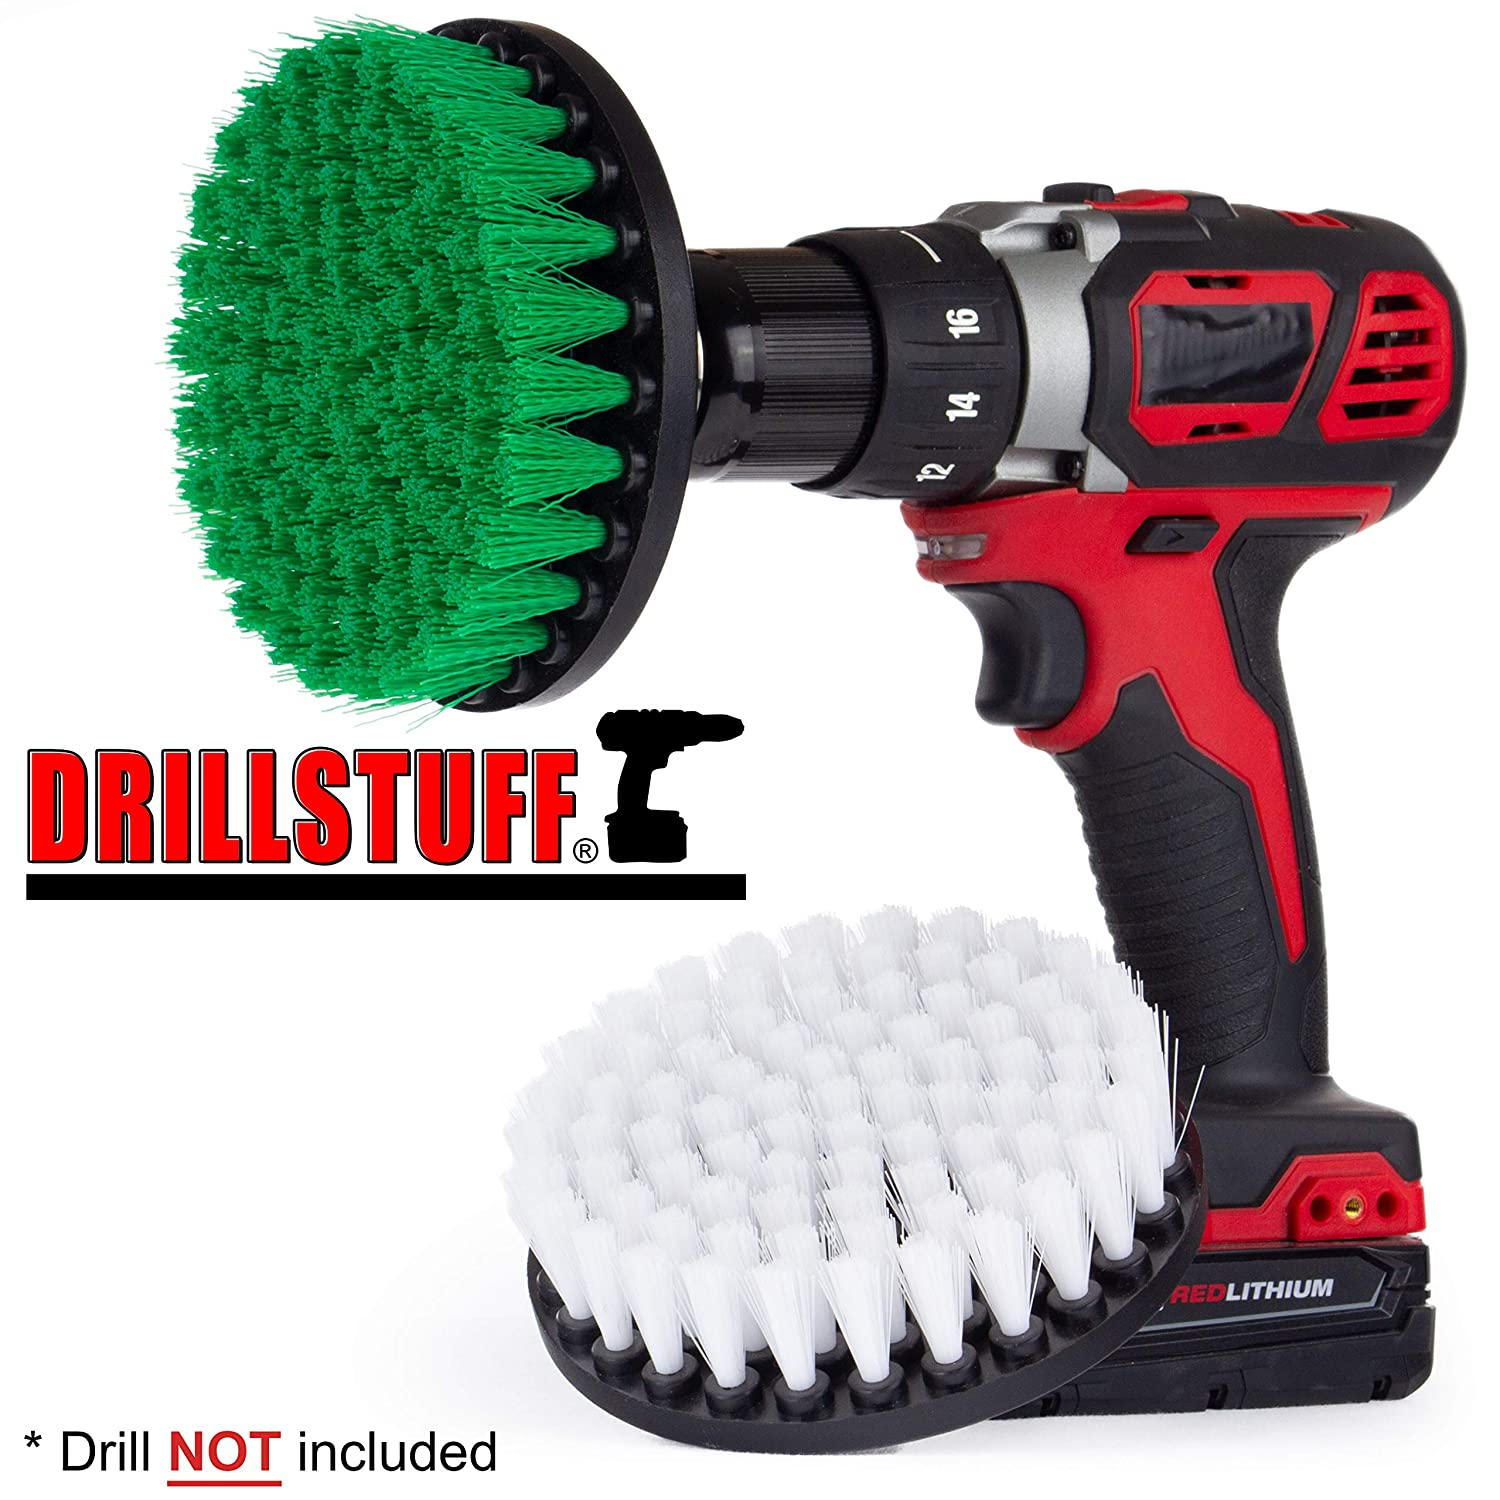 Cleaning Supplies - Kitchen Accessories - Drill Brush - Stove - Oven Rack - Countertop - Flooring - Bathroom Accessories - Shower Door - Glass Cleaner - Spin Brush - Bath Mat - Shower Curtain